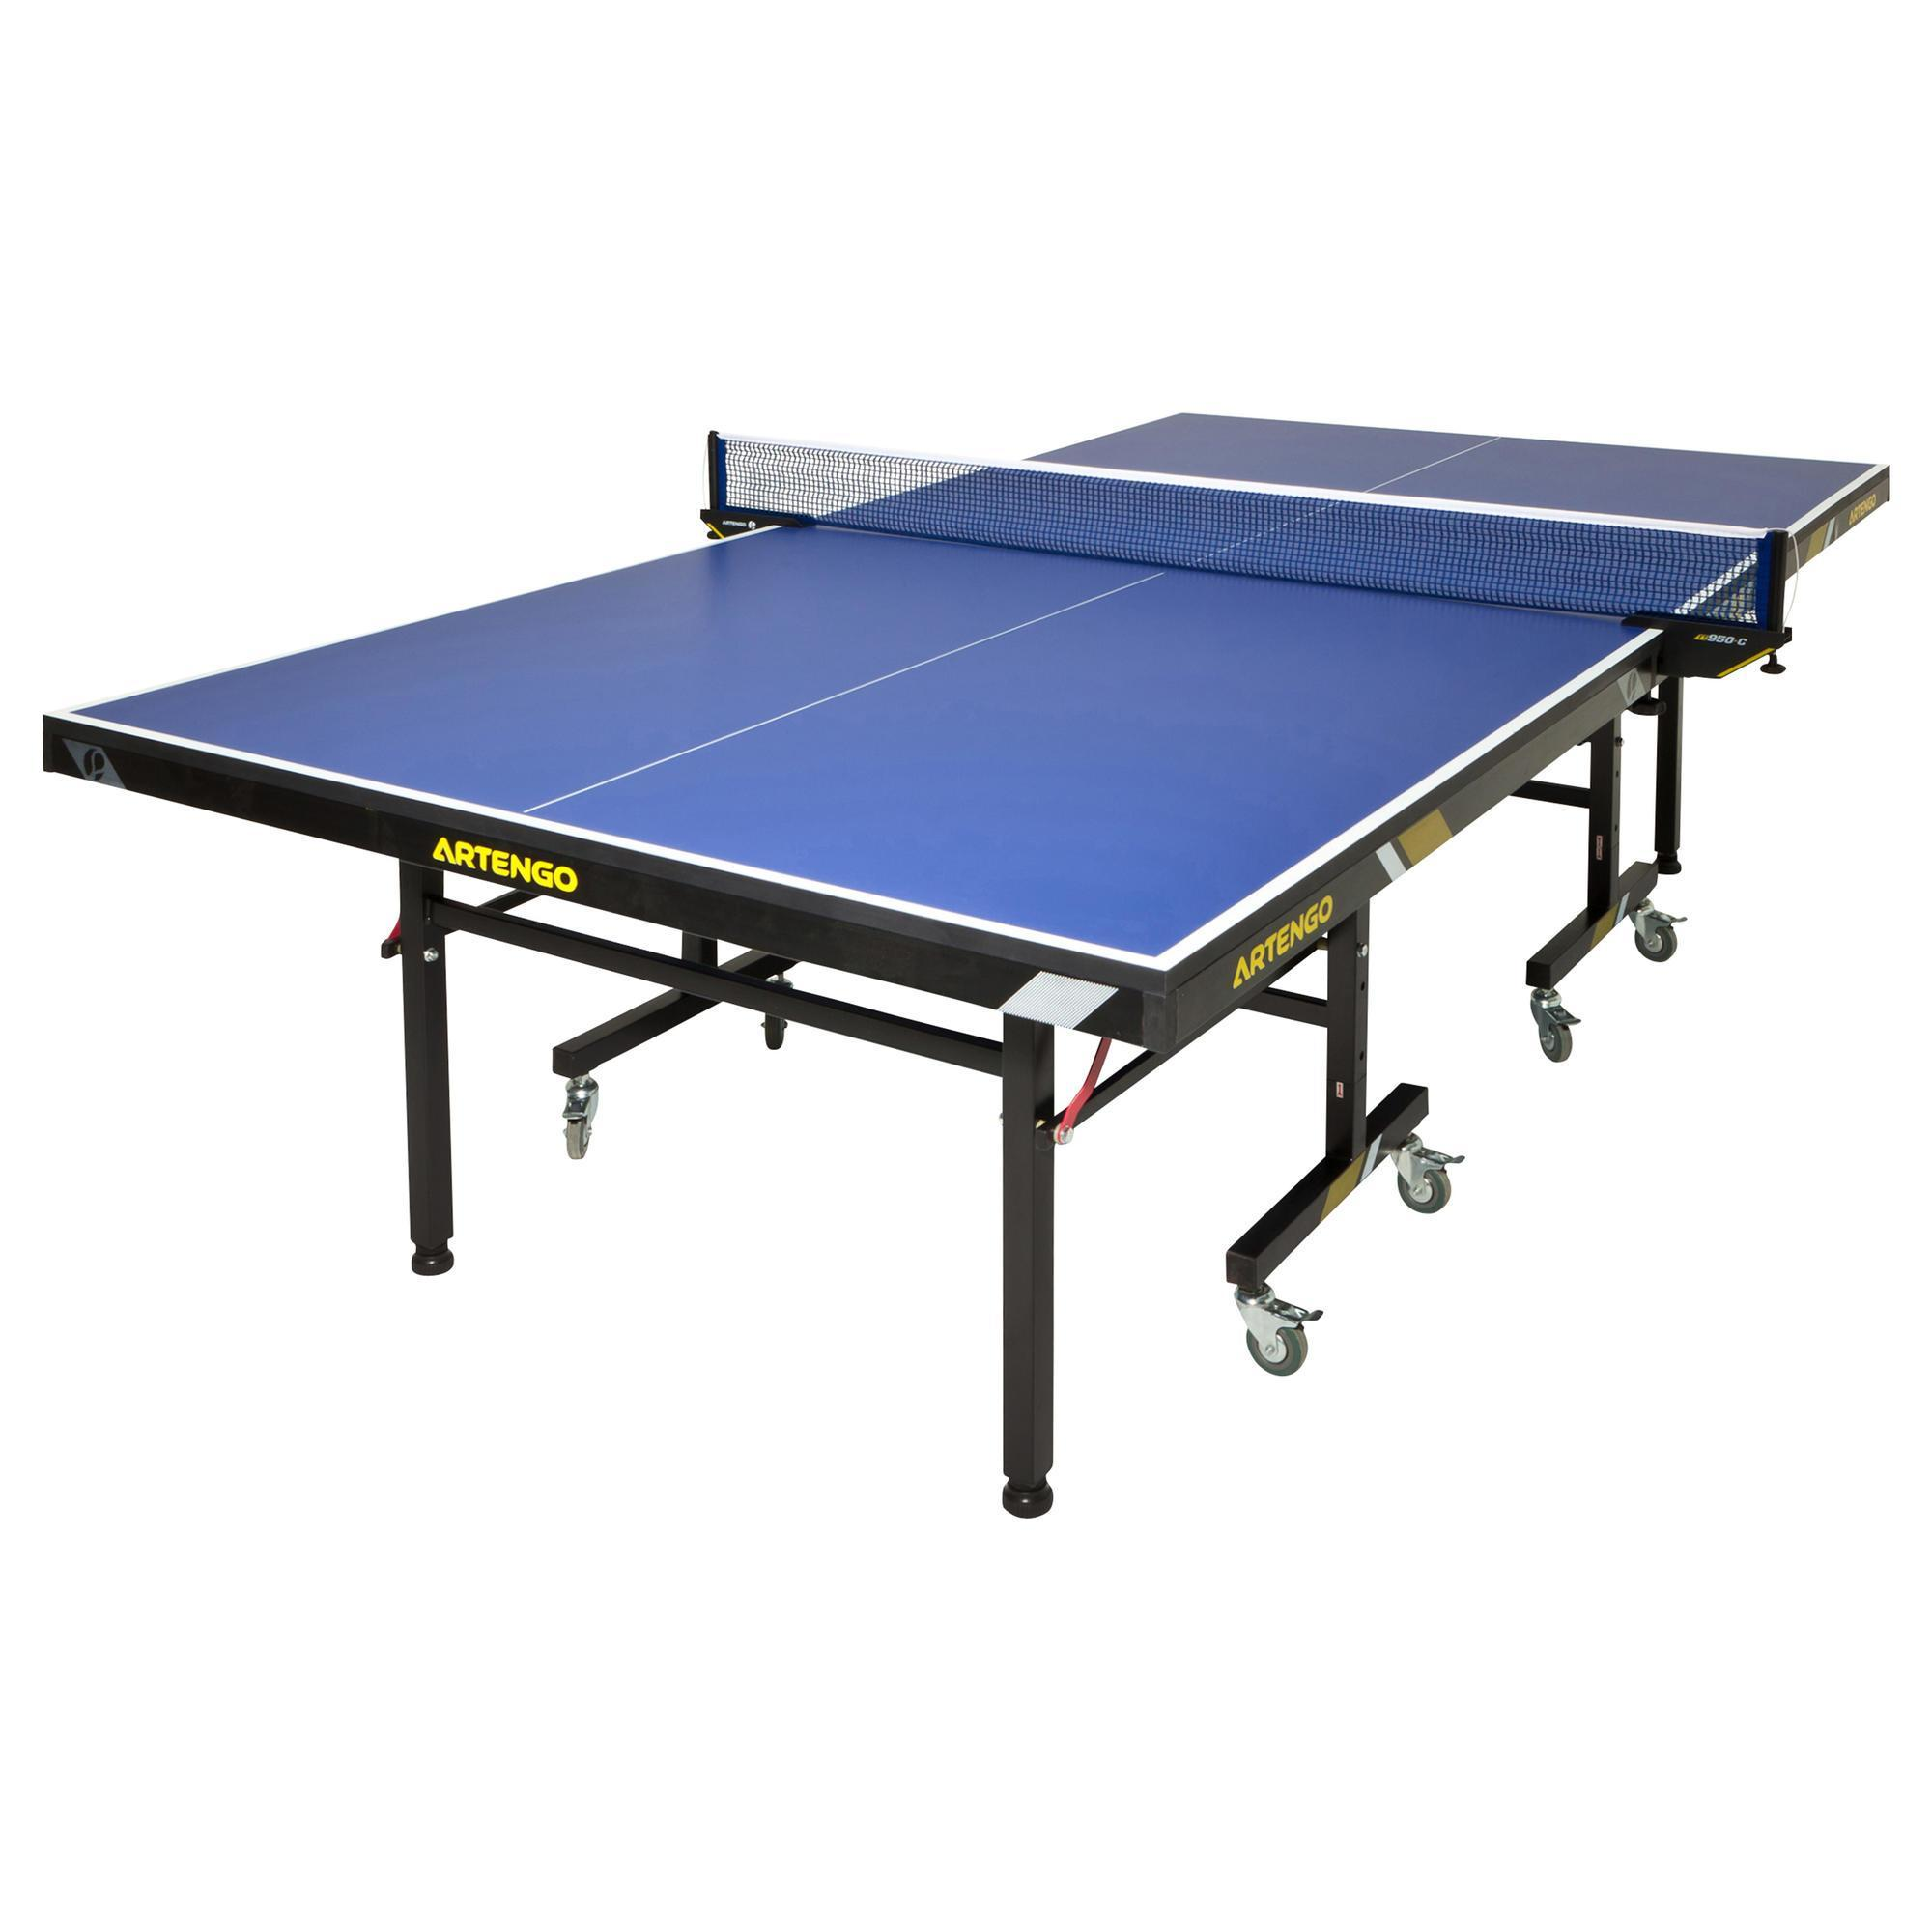 Ft950 club fftt approved table tennis table blue artengo - Table de ping pong sponeta ...